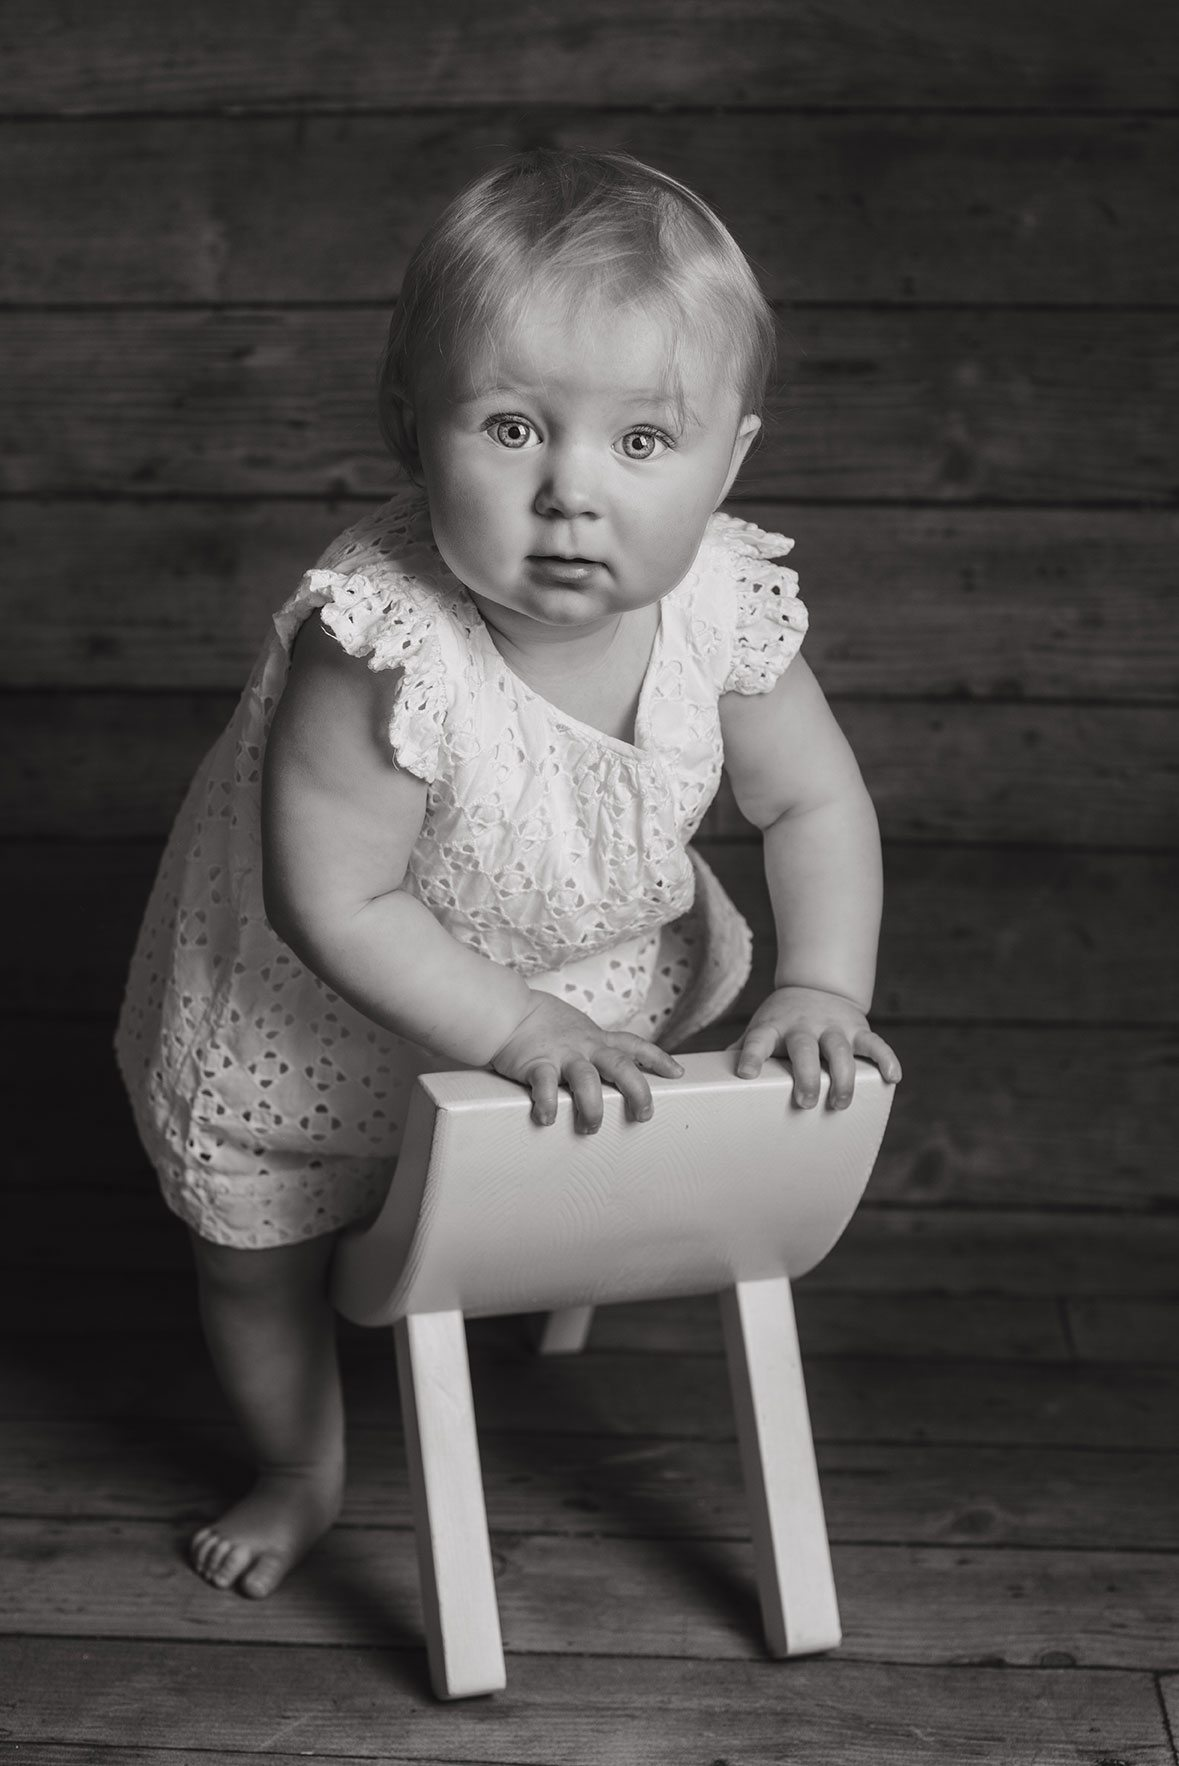 Baby girl in black and white photography for babies.